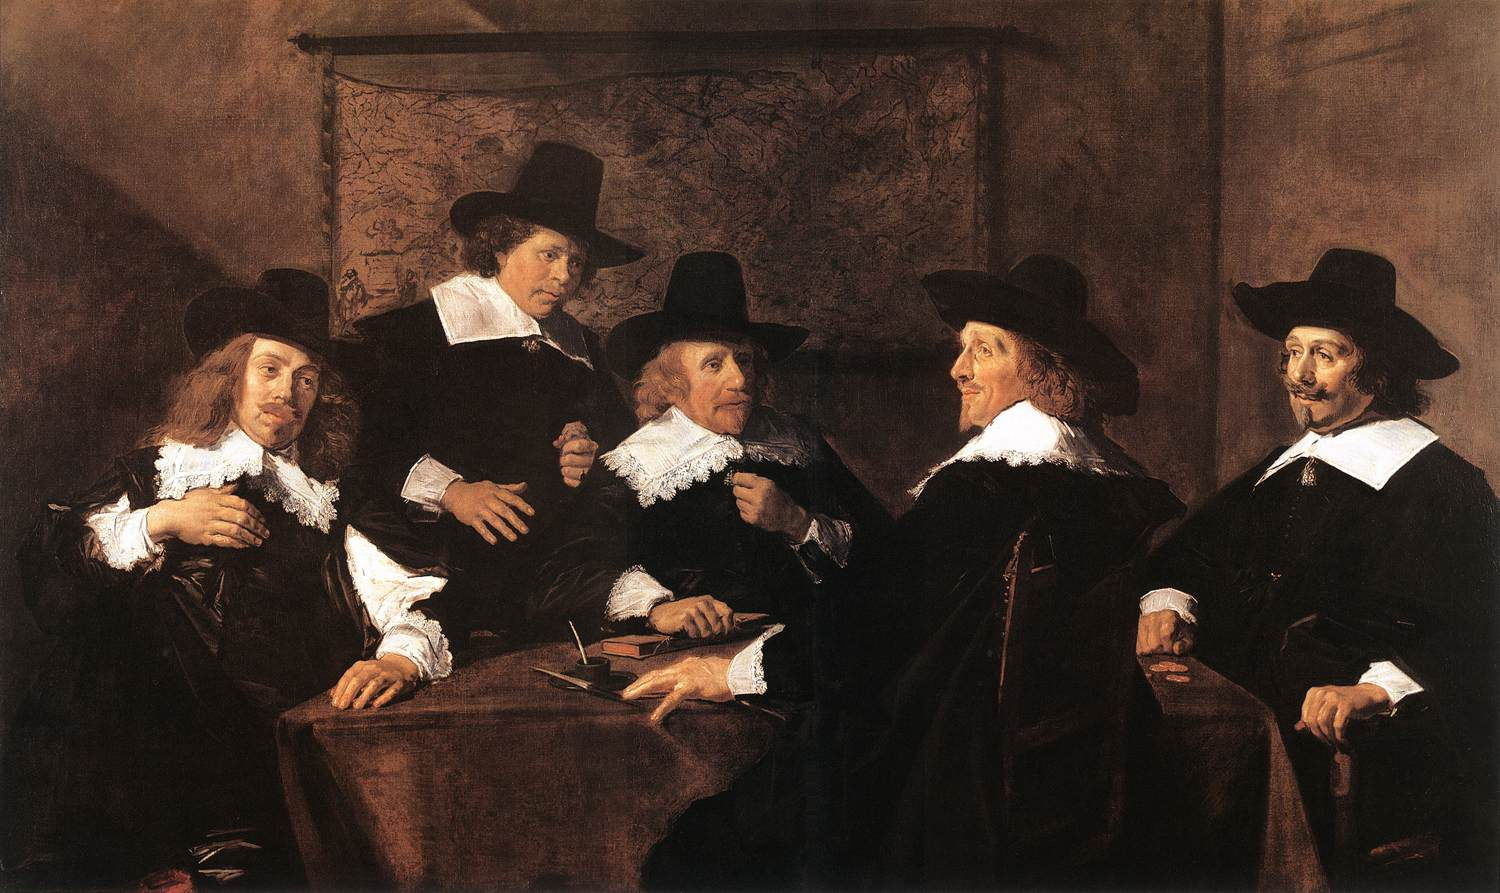 Frans_Hals_-_Regents_of_the_St_Elizabeth